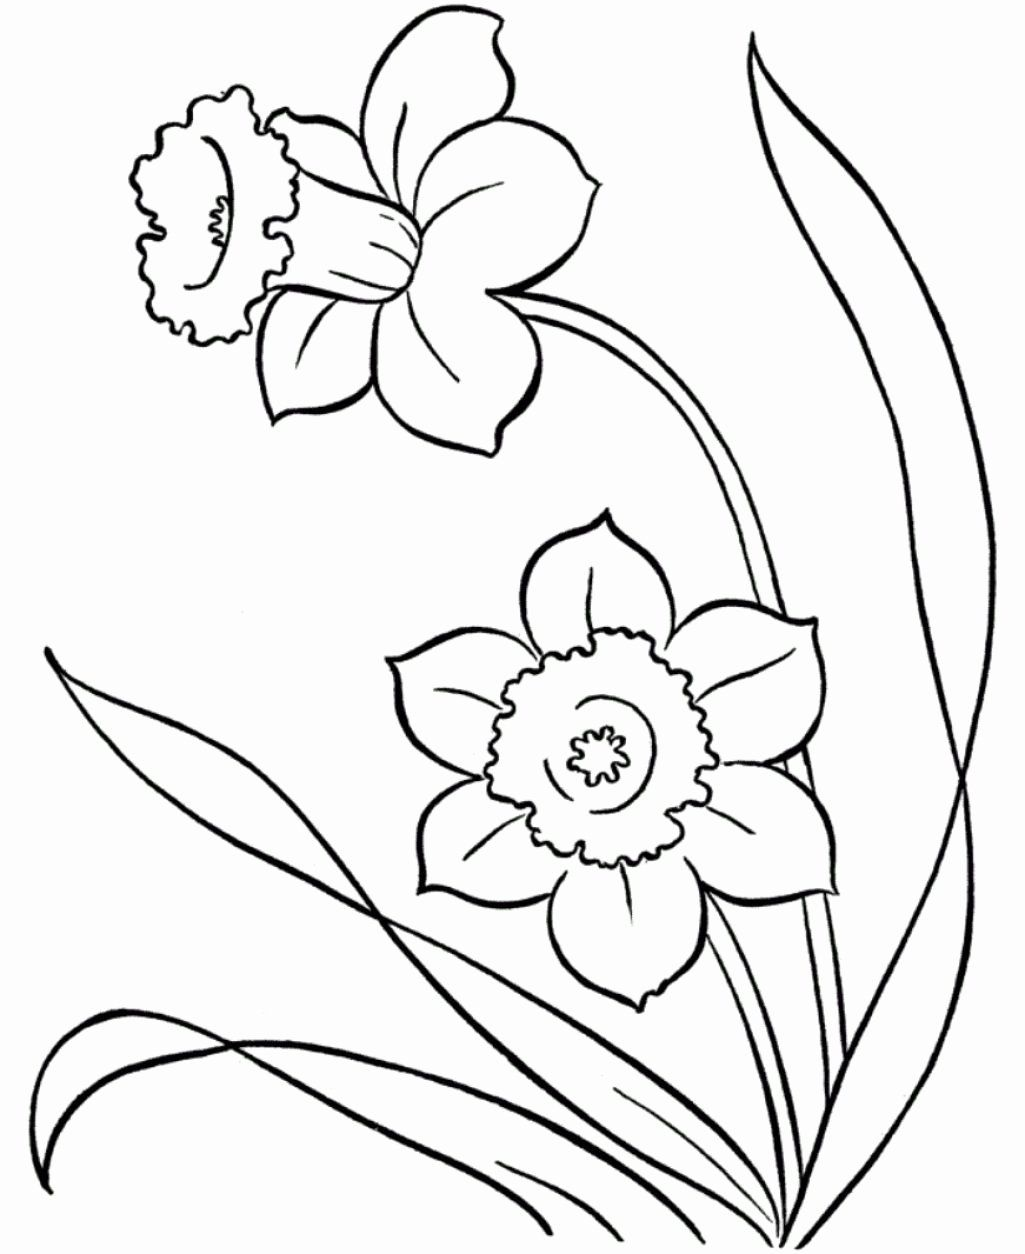 Alabama State Flower Coloring Page New Beautiful Bird Paradise Flower Coloring Page Nicho In 2020 Spring Coloring Pages Flower Coloring Pages Flower Drawing